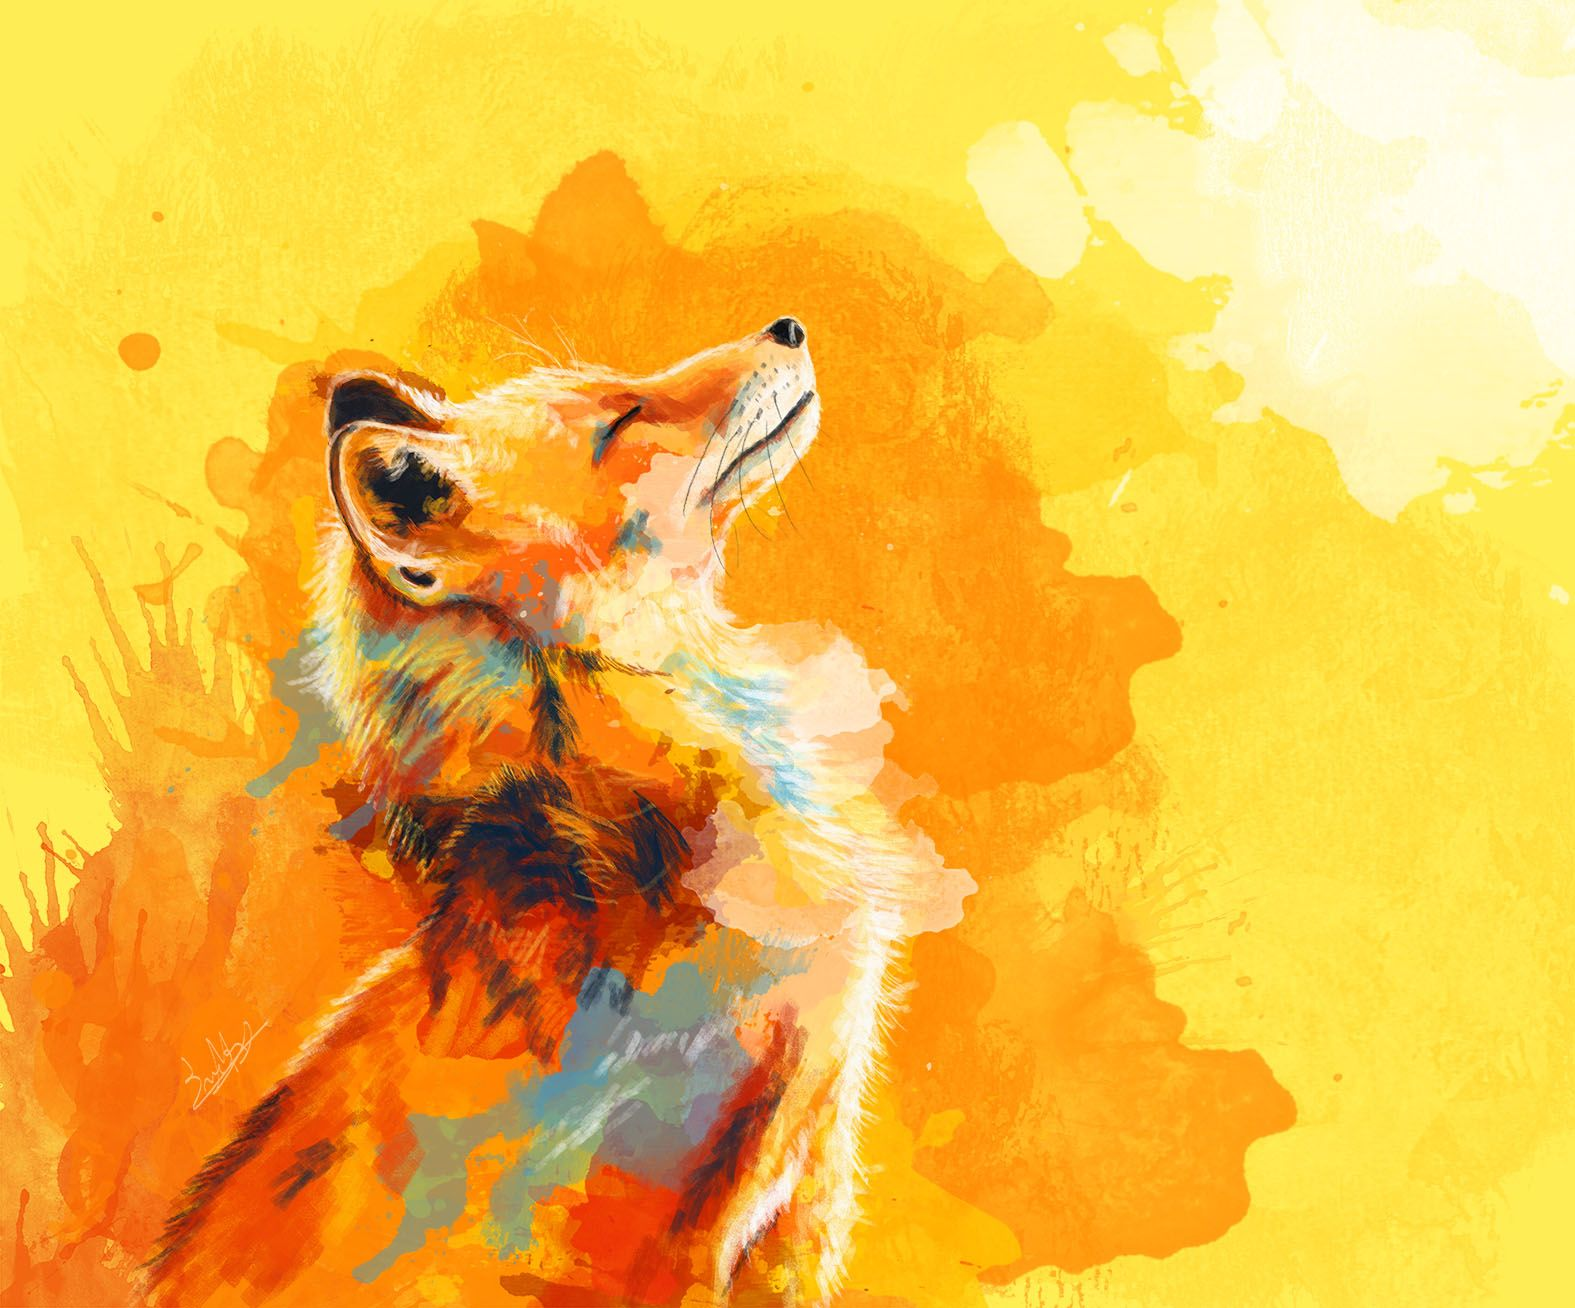 Blissful Light Digital Painting Colorful Painting Of A Fox Smiling In The Morning Light On An Abstract Background Prints And Pr Fox Art Print Art Fox Art